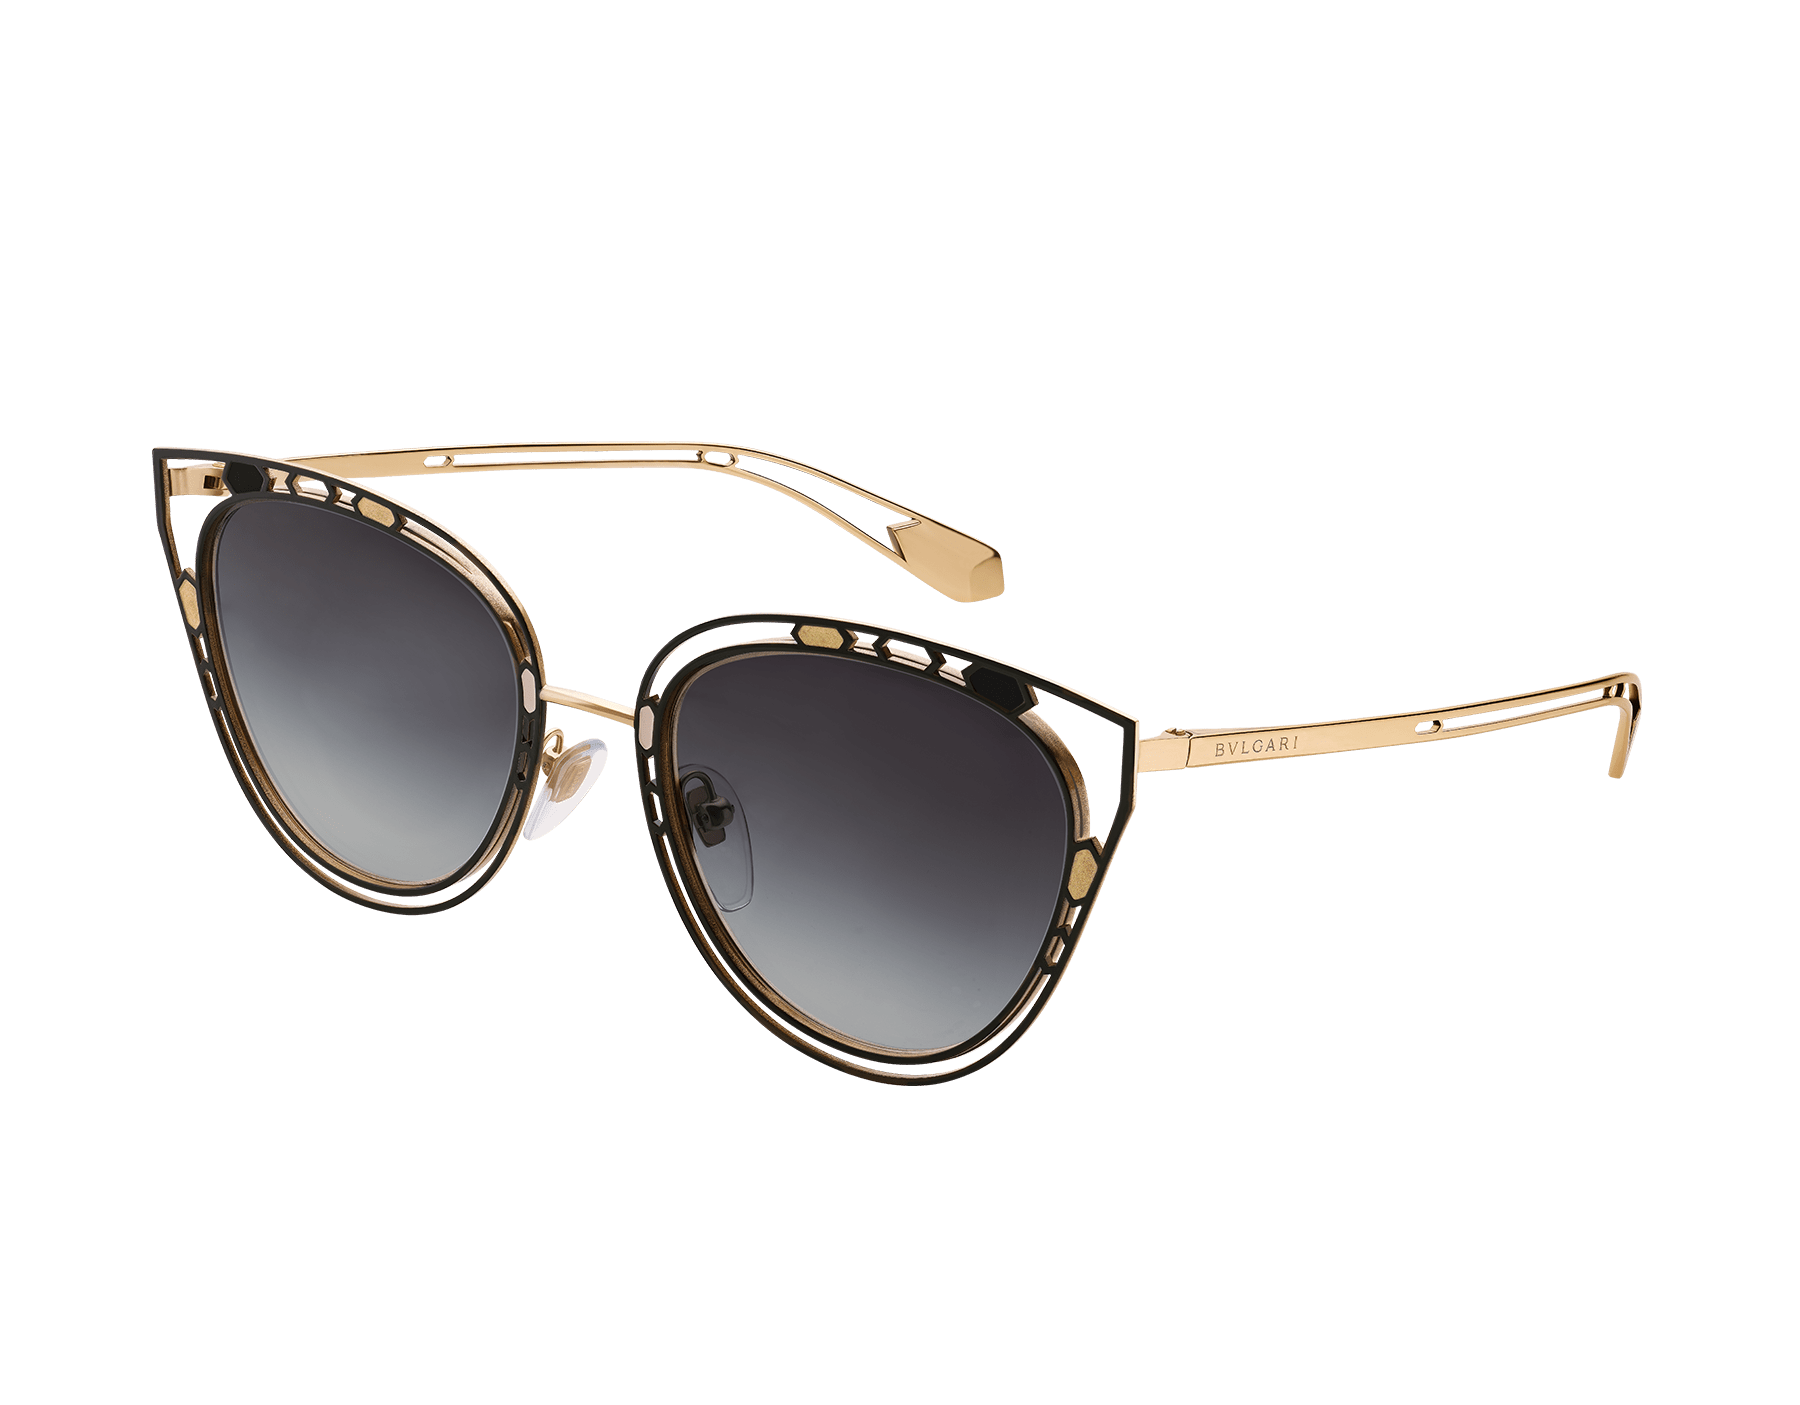 Serpenti 'Temptalicious' cat-eye metal frame with an openwork structure and colorful details. 903534 image 1